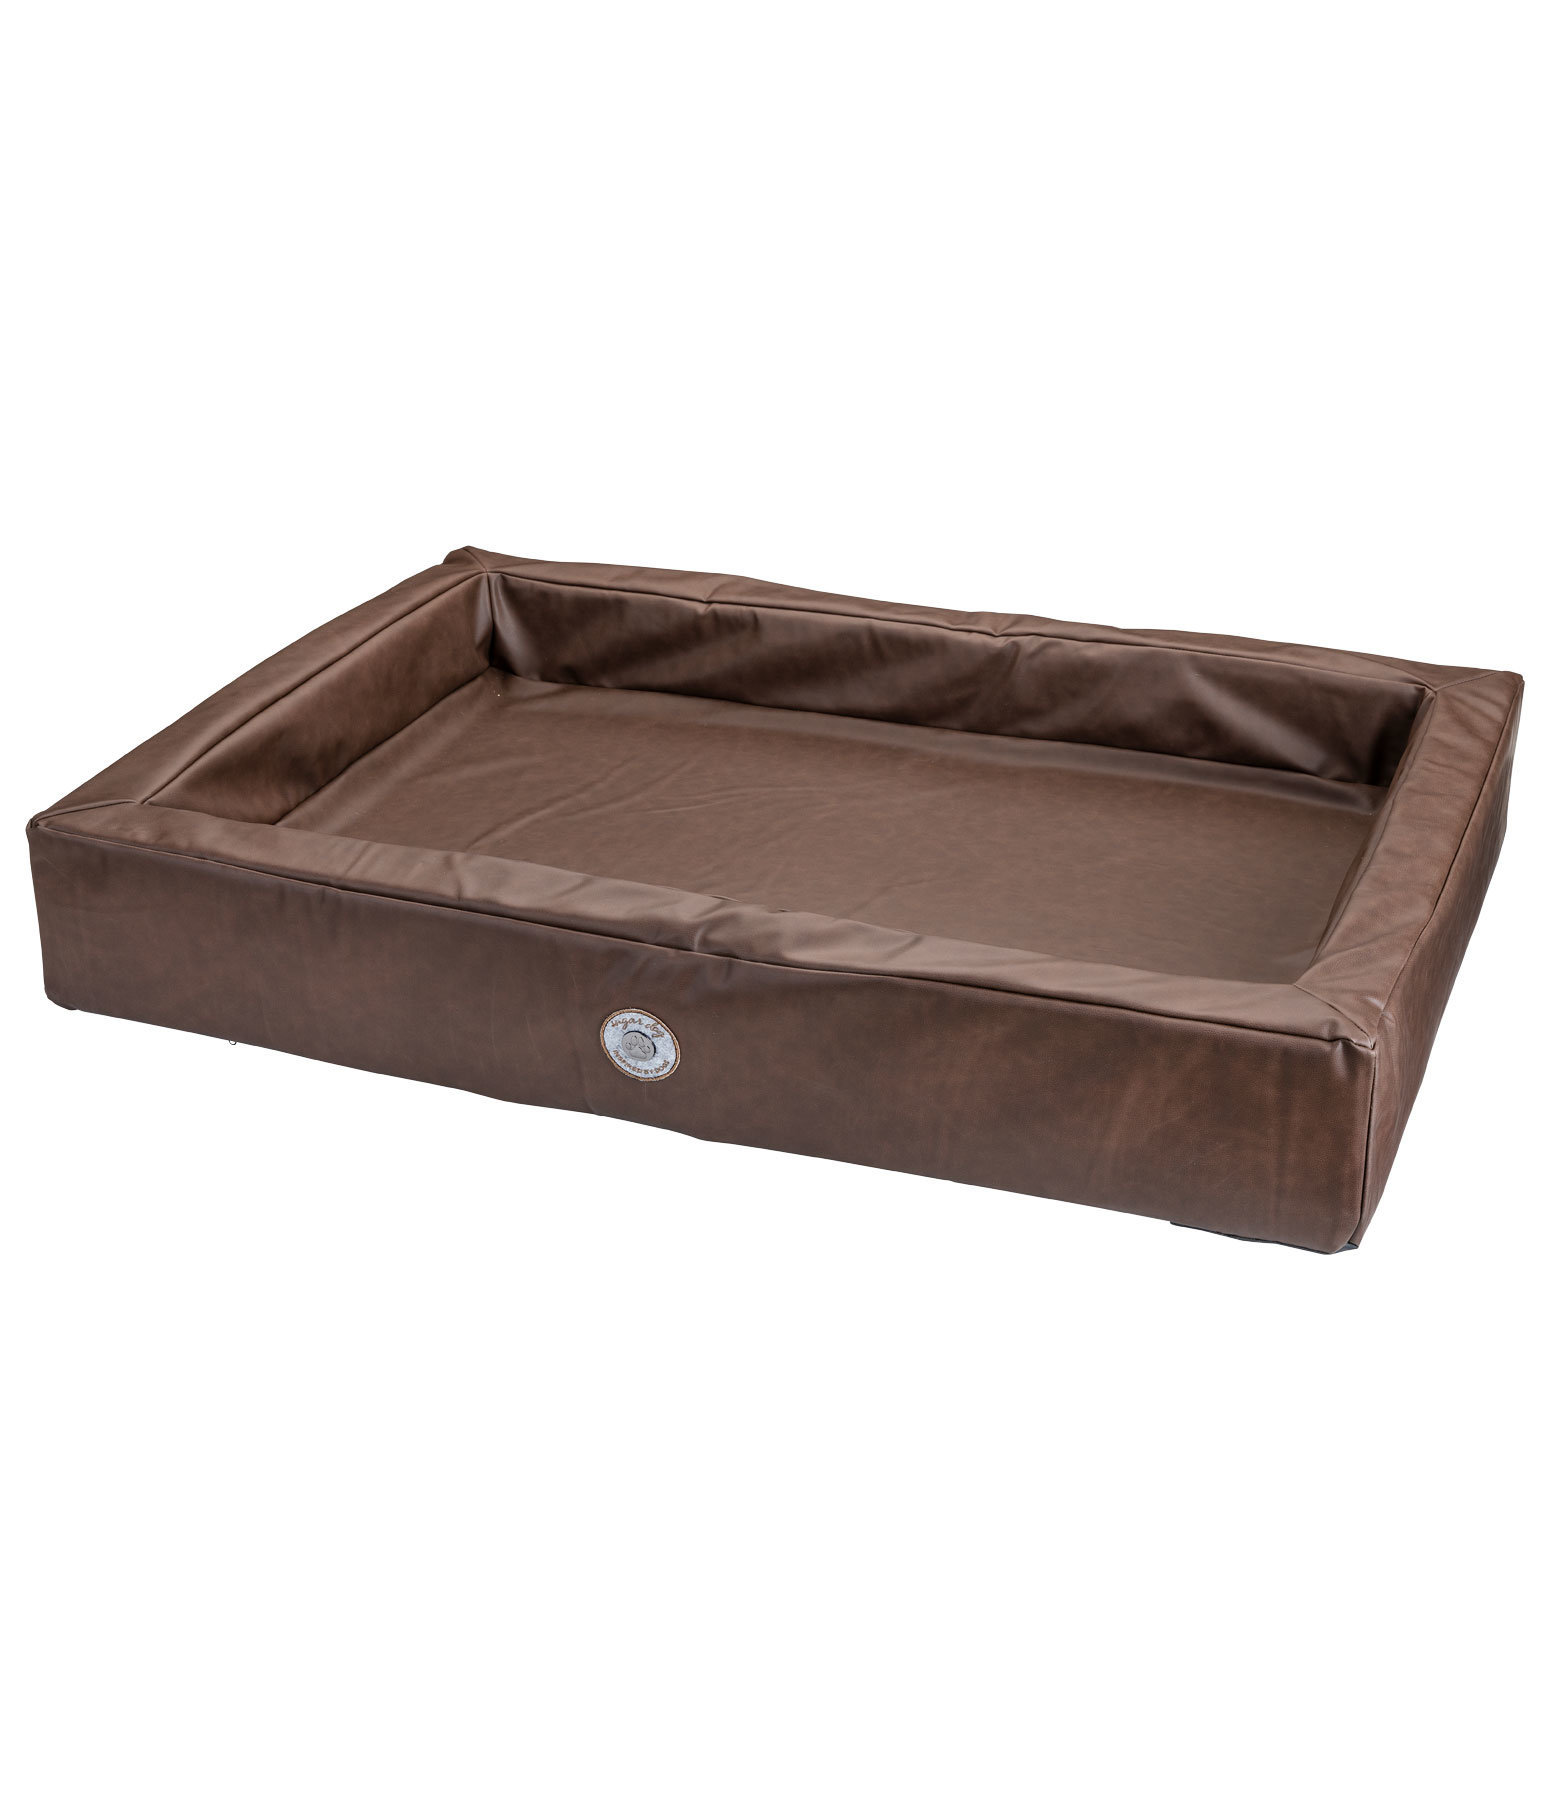 Synthetic Leather Dog Bed Volterra